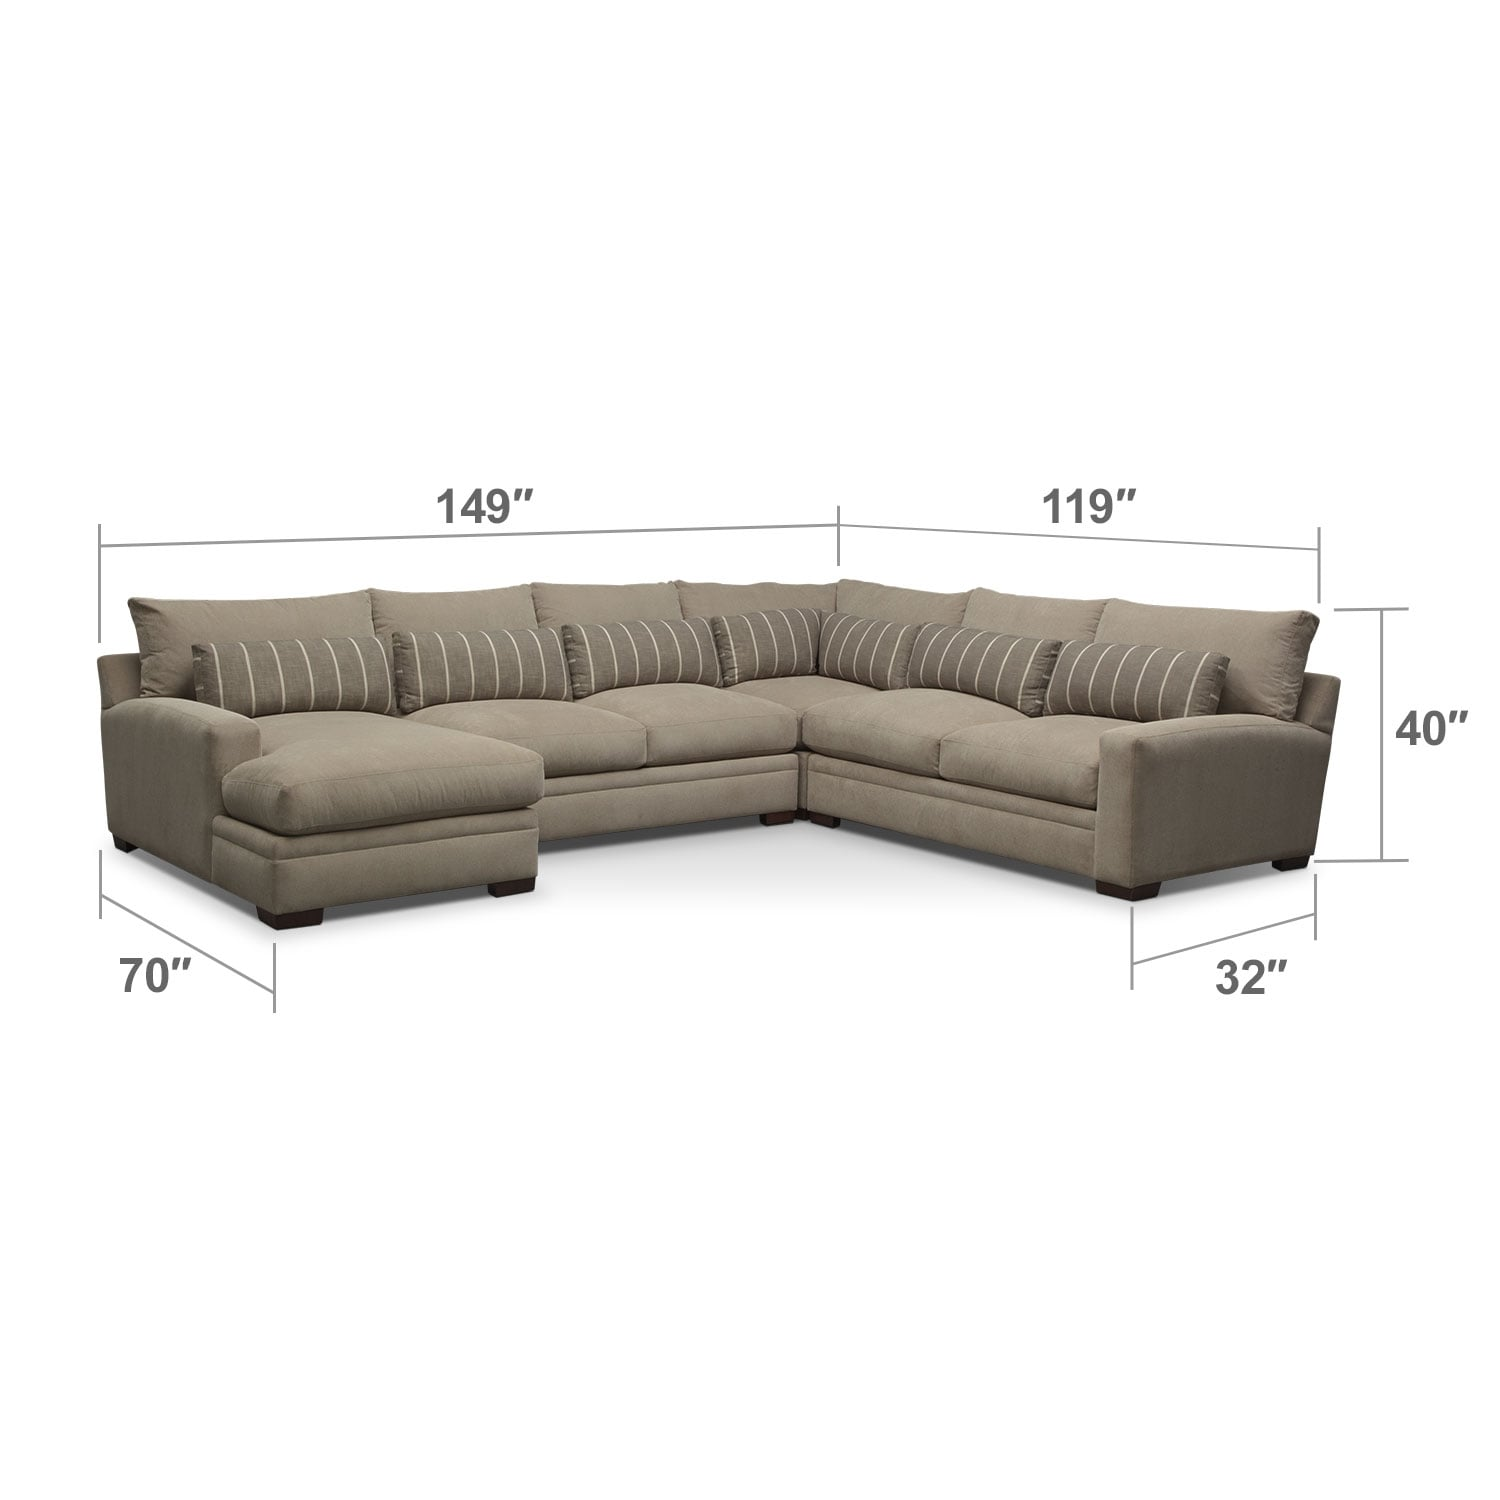 where to donate sectional sofa vintage vinyl bed ventura 4 piece left facing buff value city